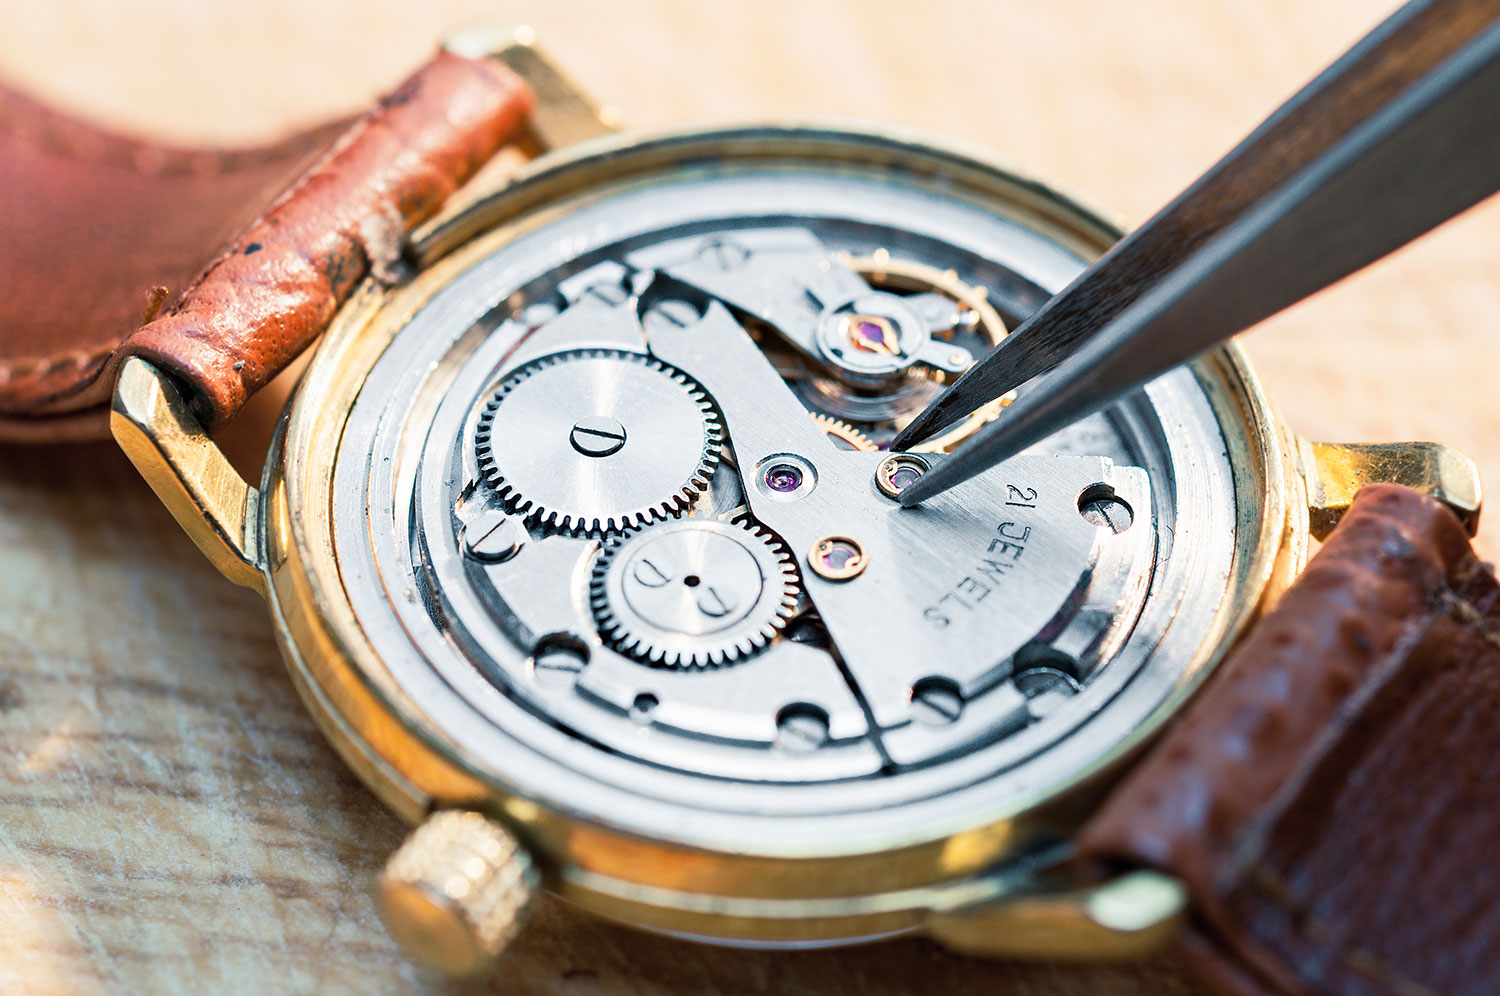 The Vintage Watch Company